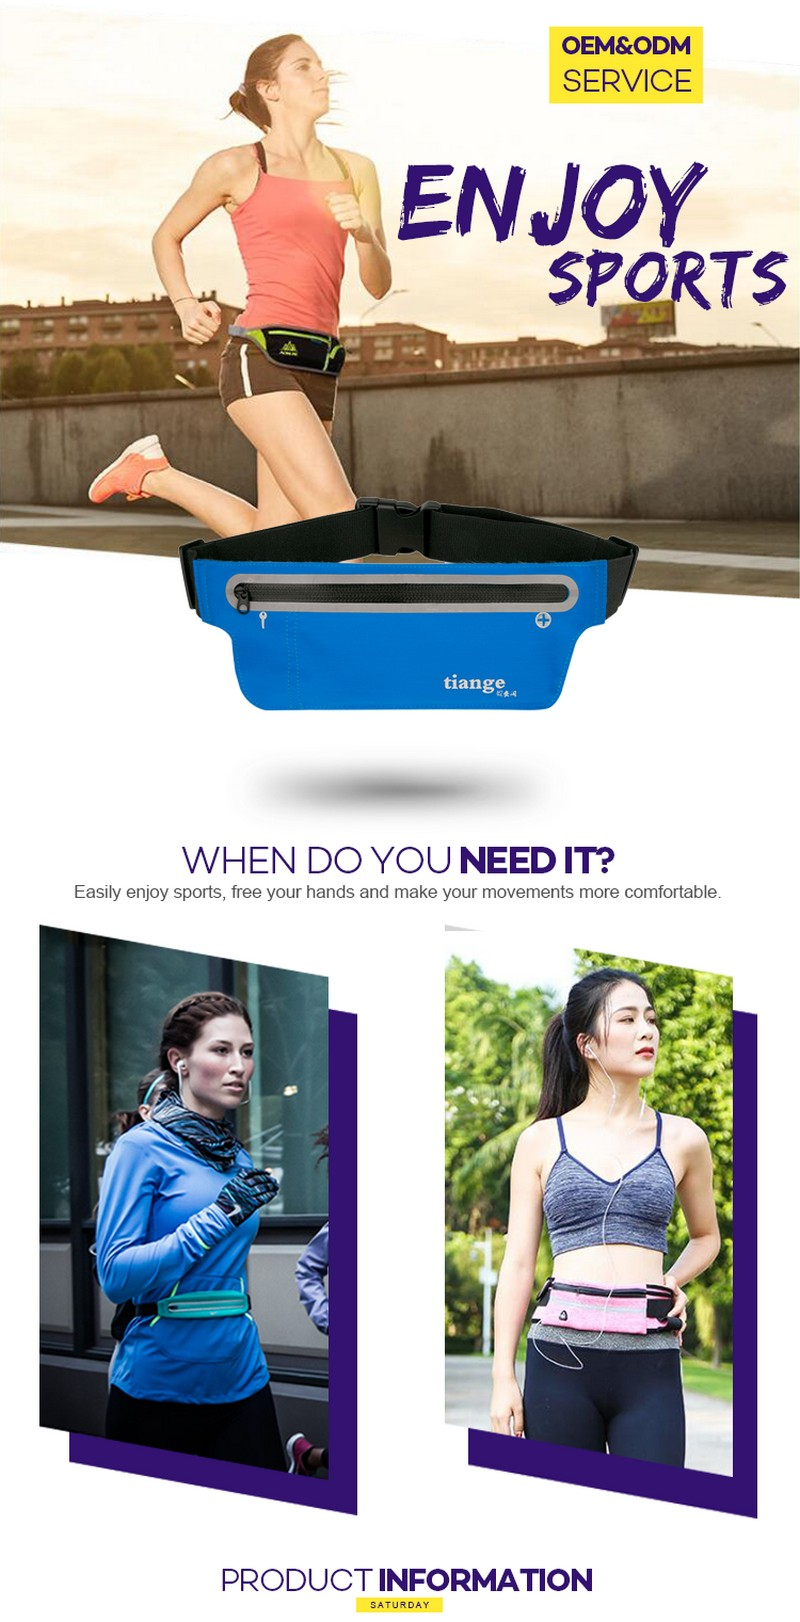 Promising running waist pouch elastic belt audio cable outlet hidden jogging waterproof sport waist belt bag